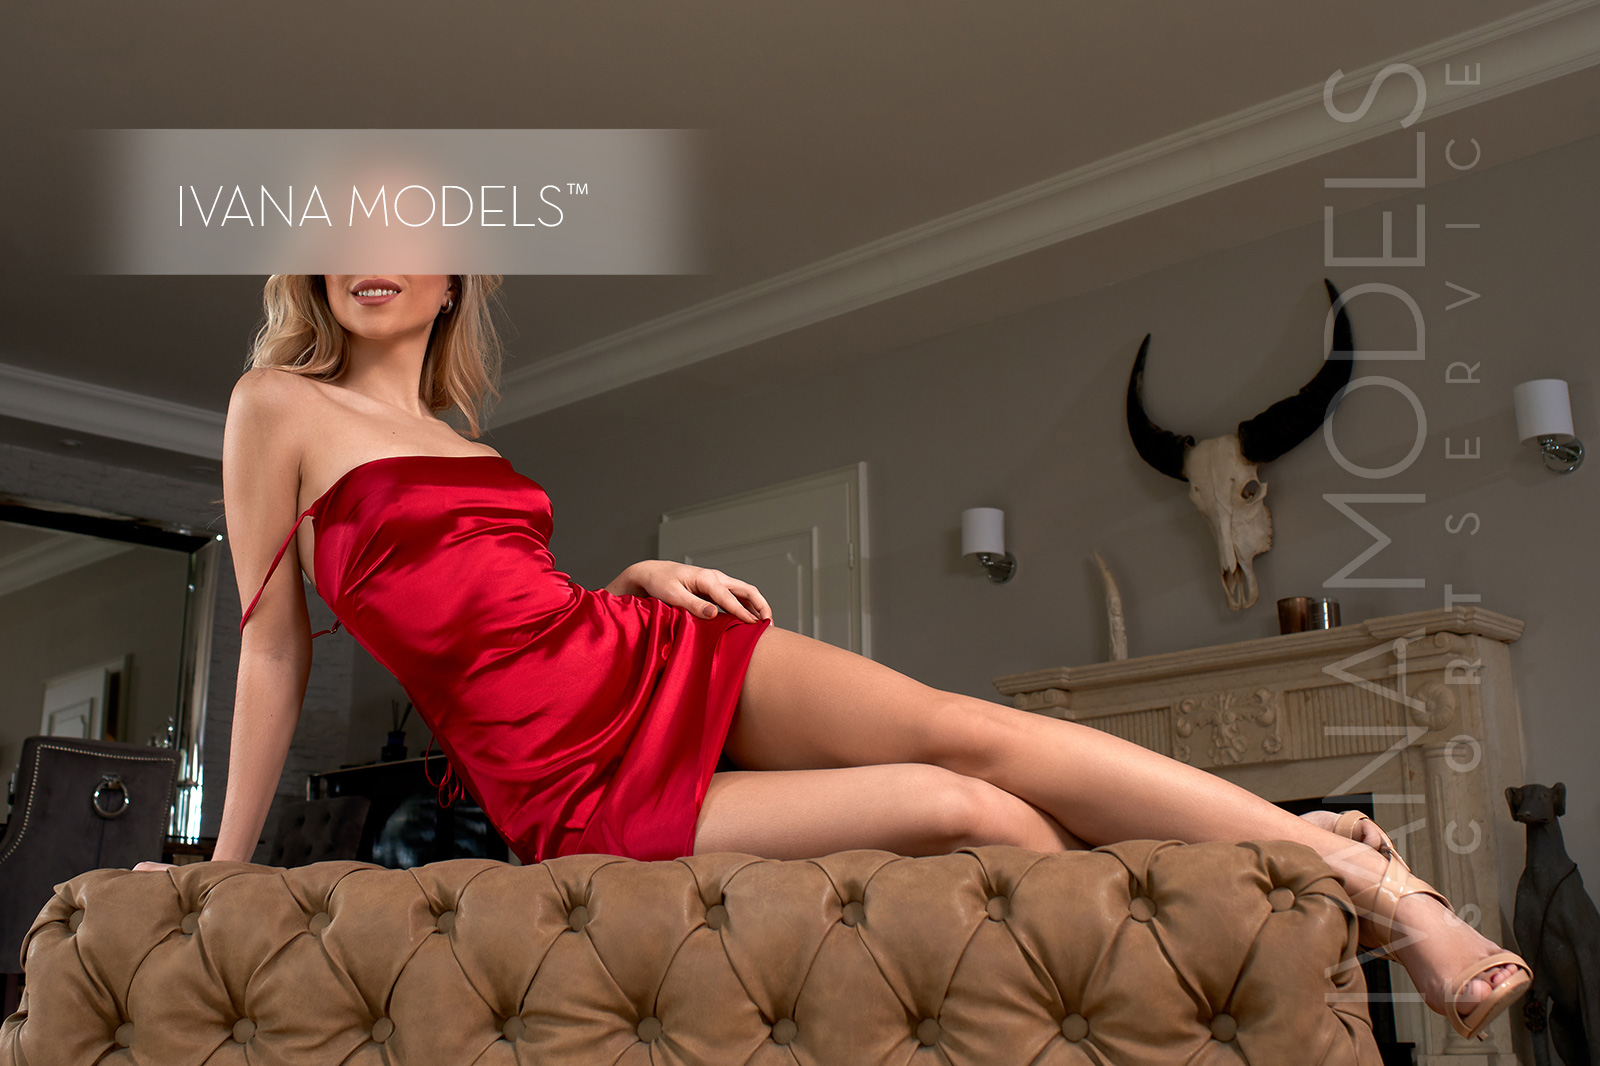 High class Escort Dame Düsseldorf - Alice